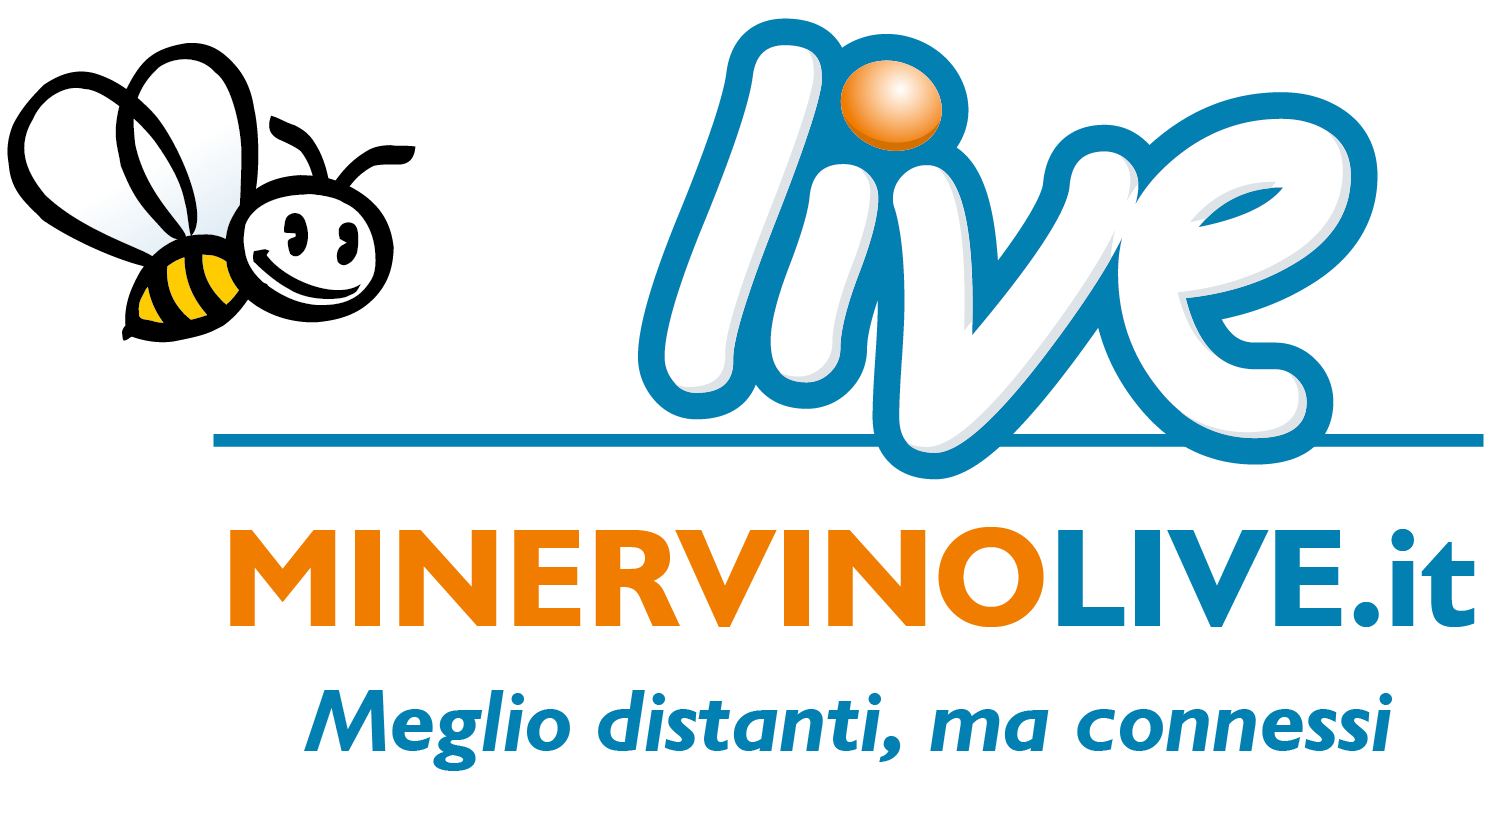 MinervinoLive.it